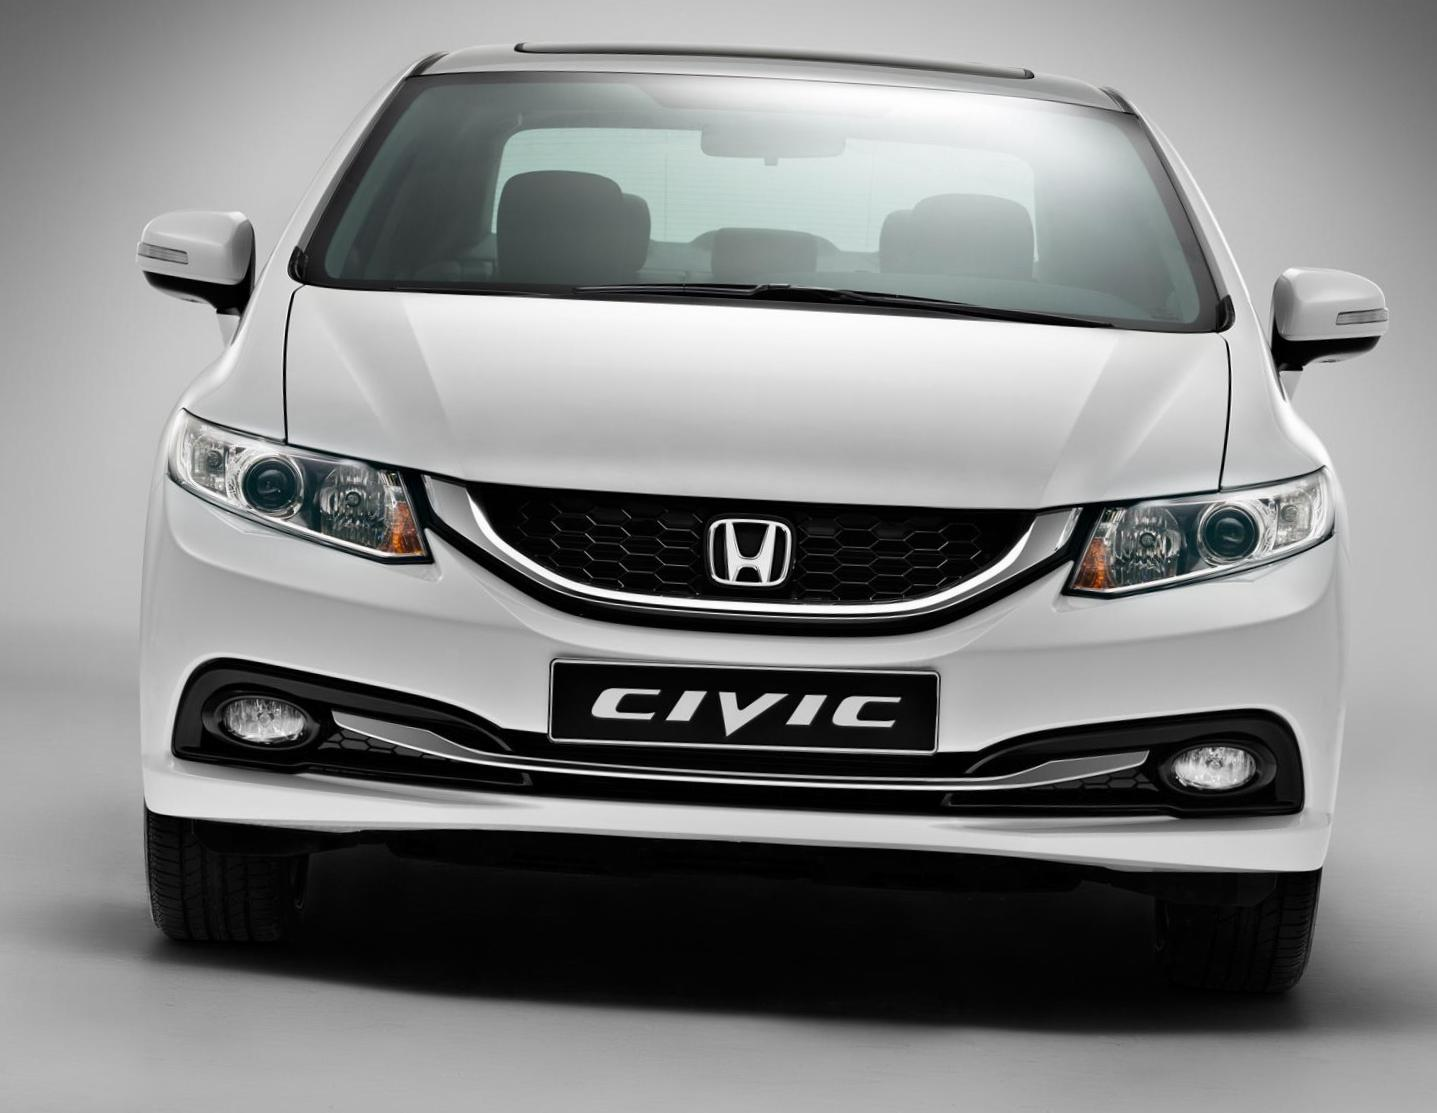 Civic 4D Honda auto 2015